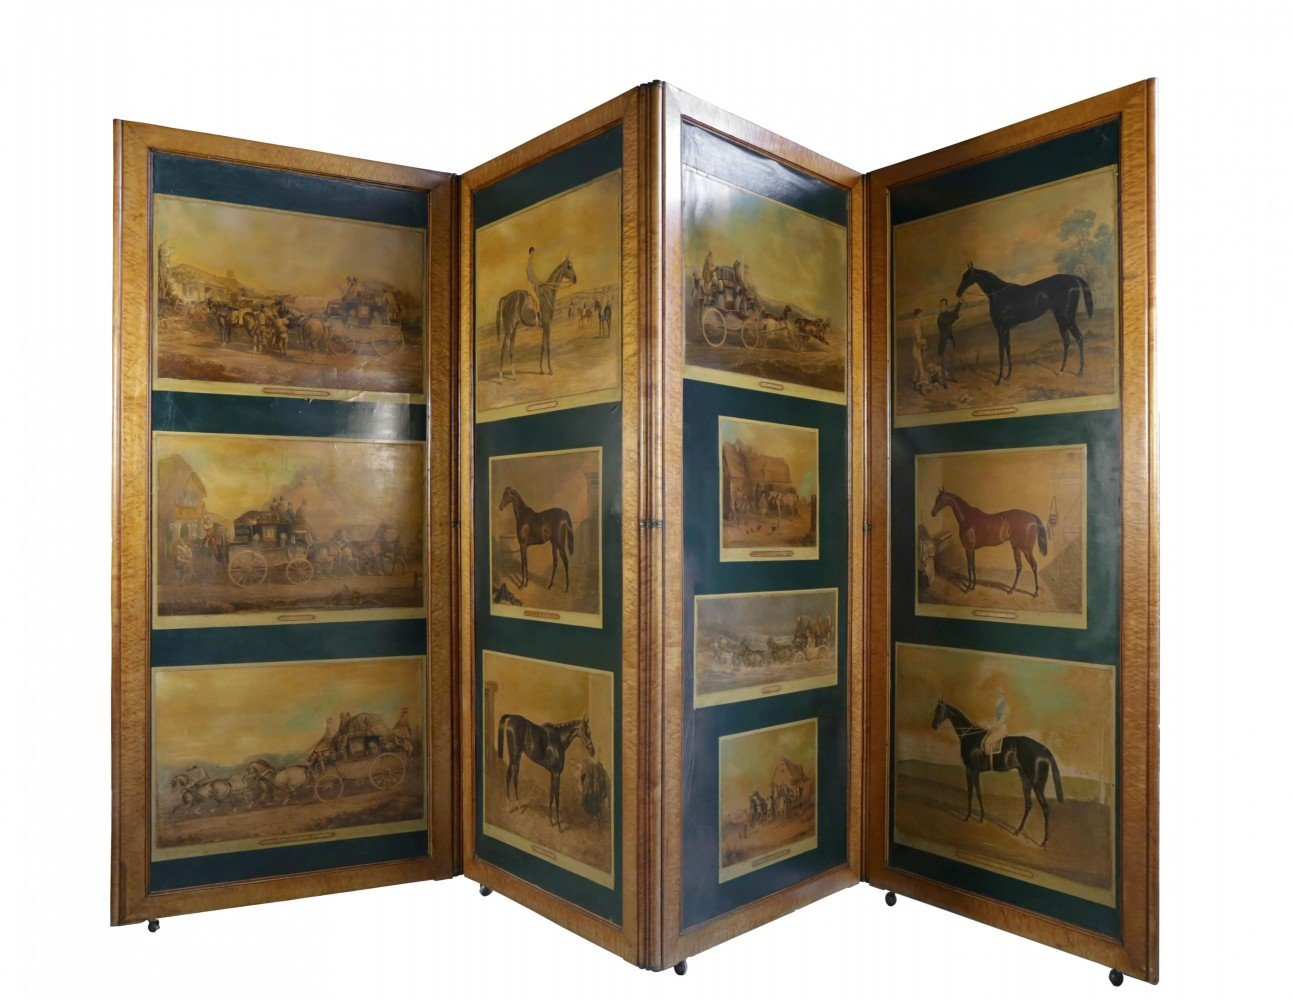 Rare English Figured Maple Four Panel Hinged Screen with Decoupaged Coaching Scenes and Thoroughbreds by 19thc. British School